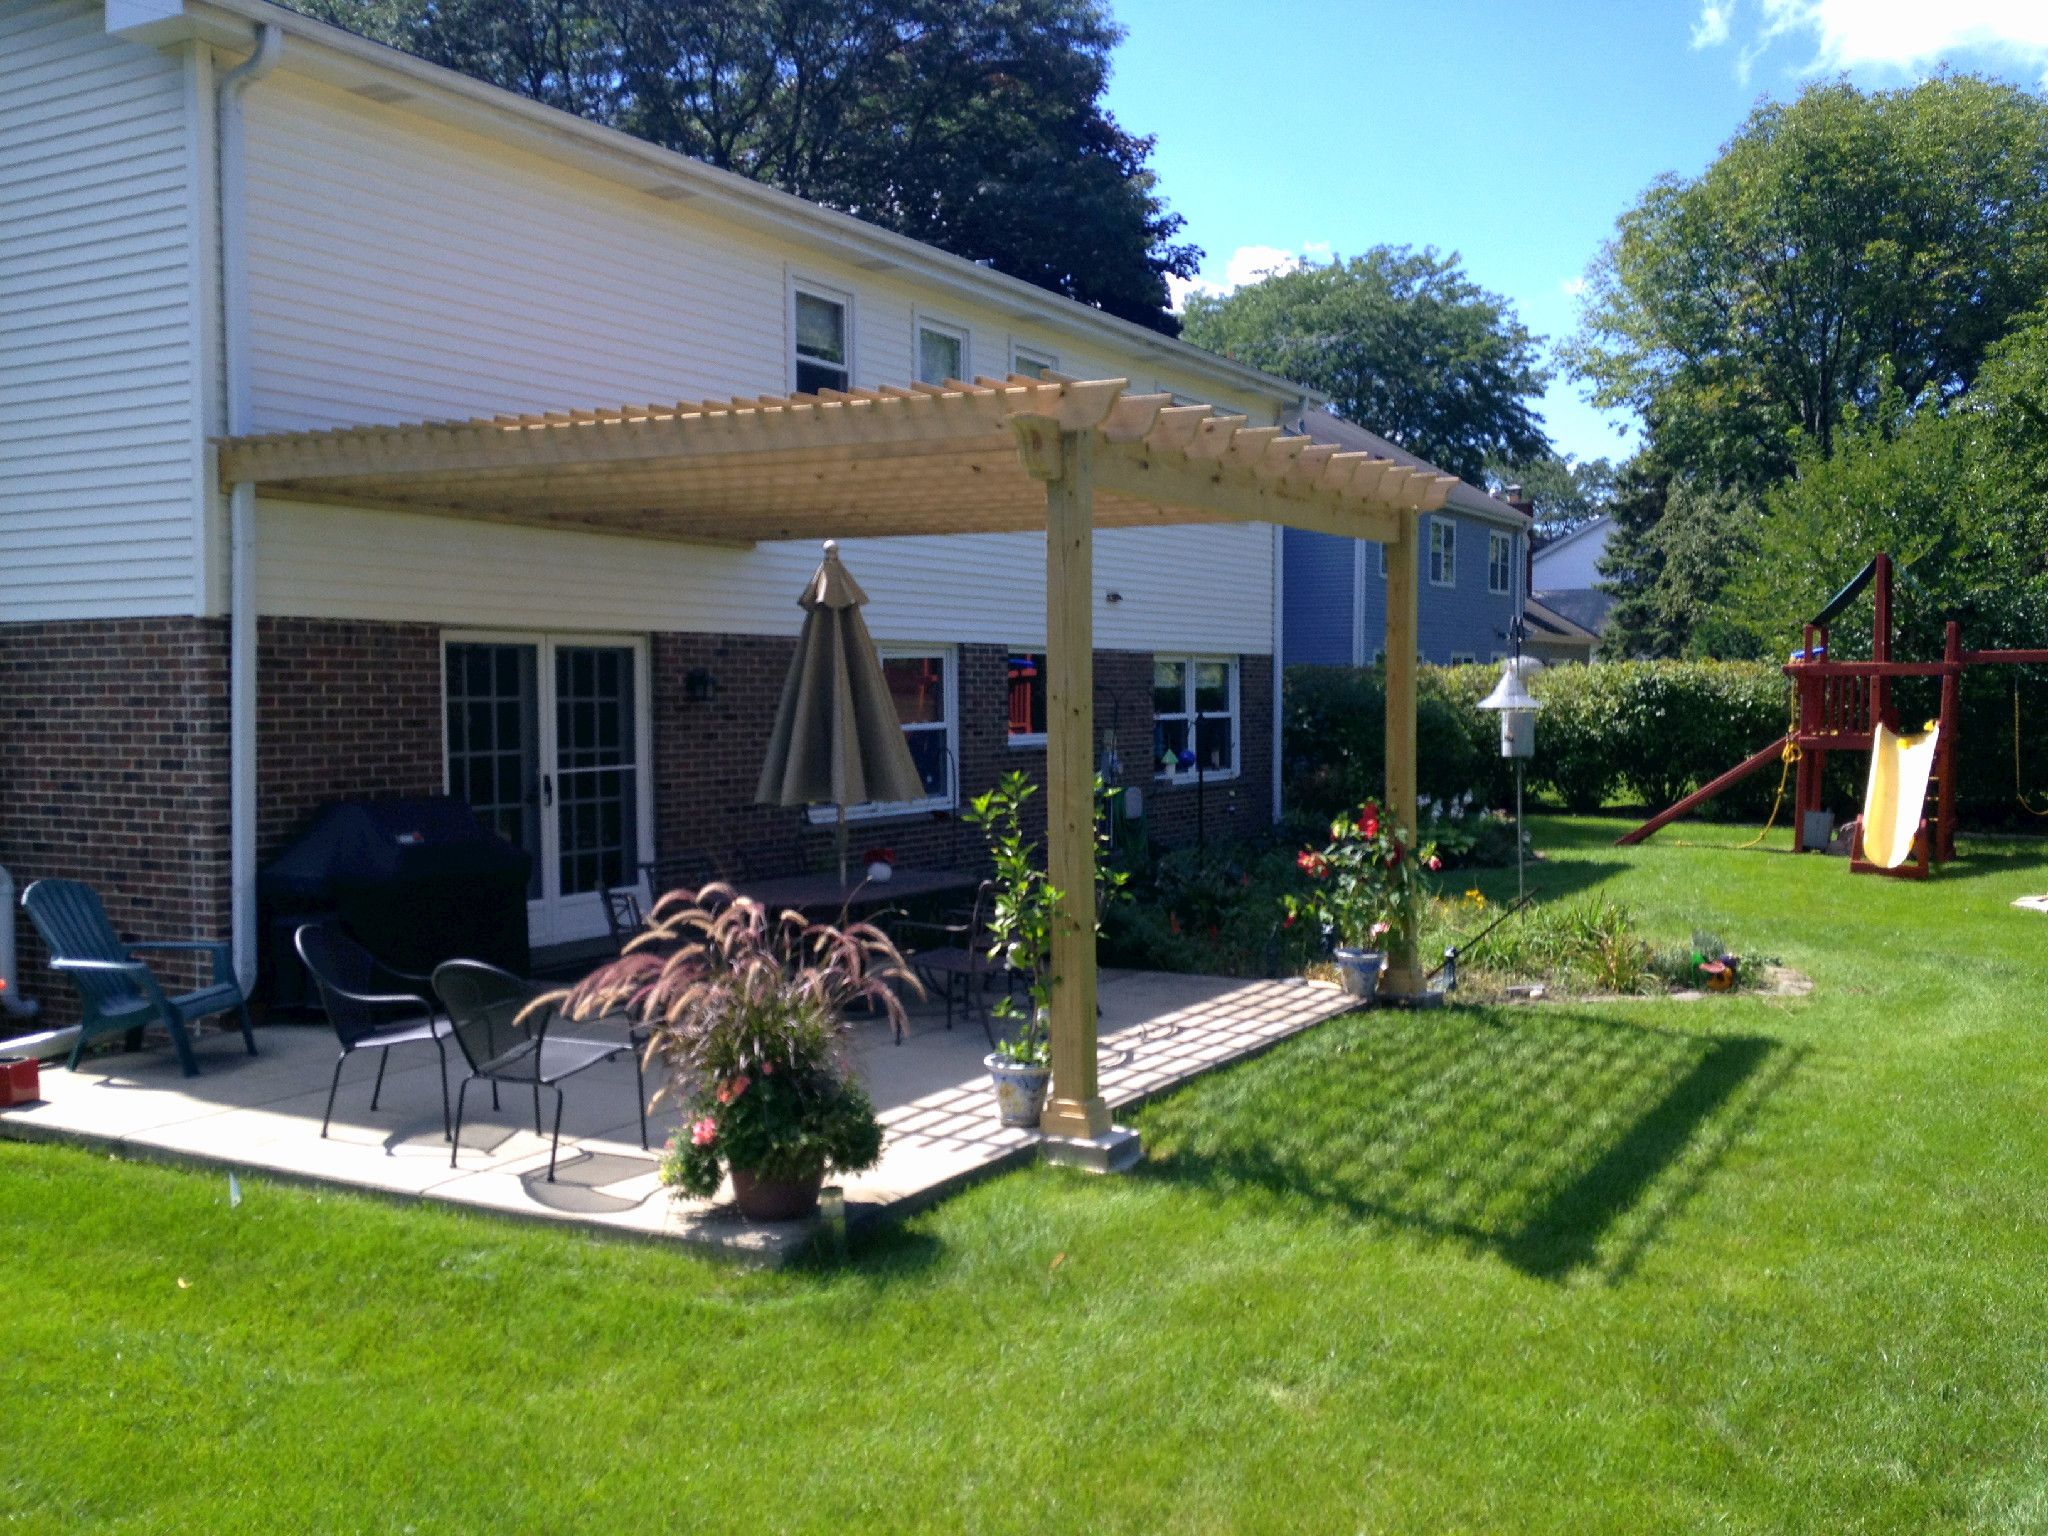 Hoffman Estates Il Pergola Builder Chicago Area Pergola Builder